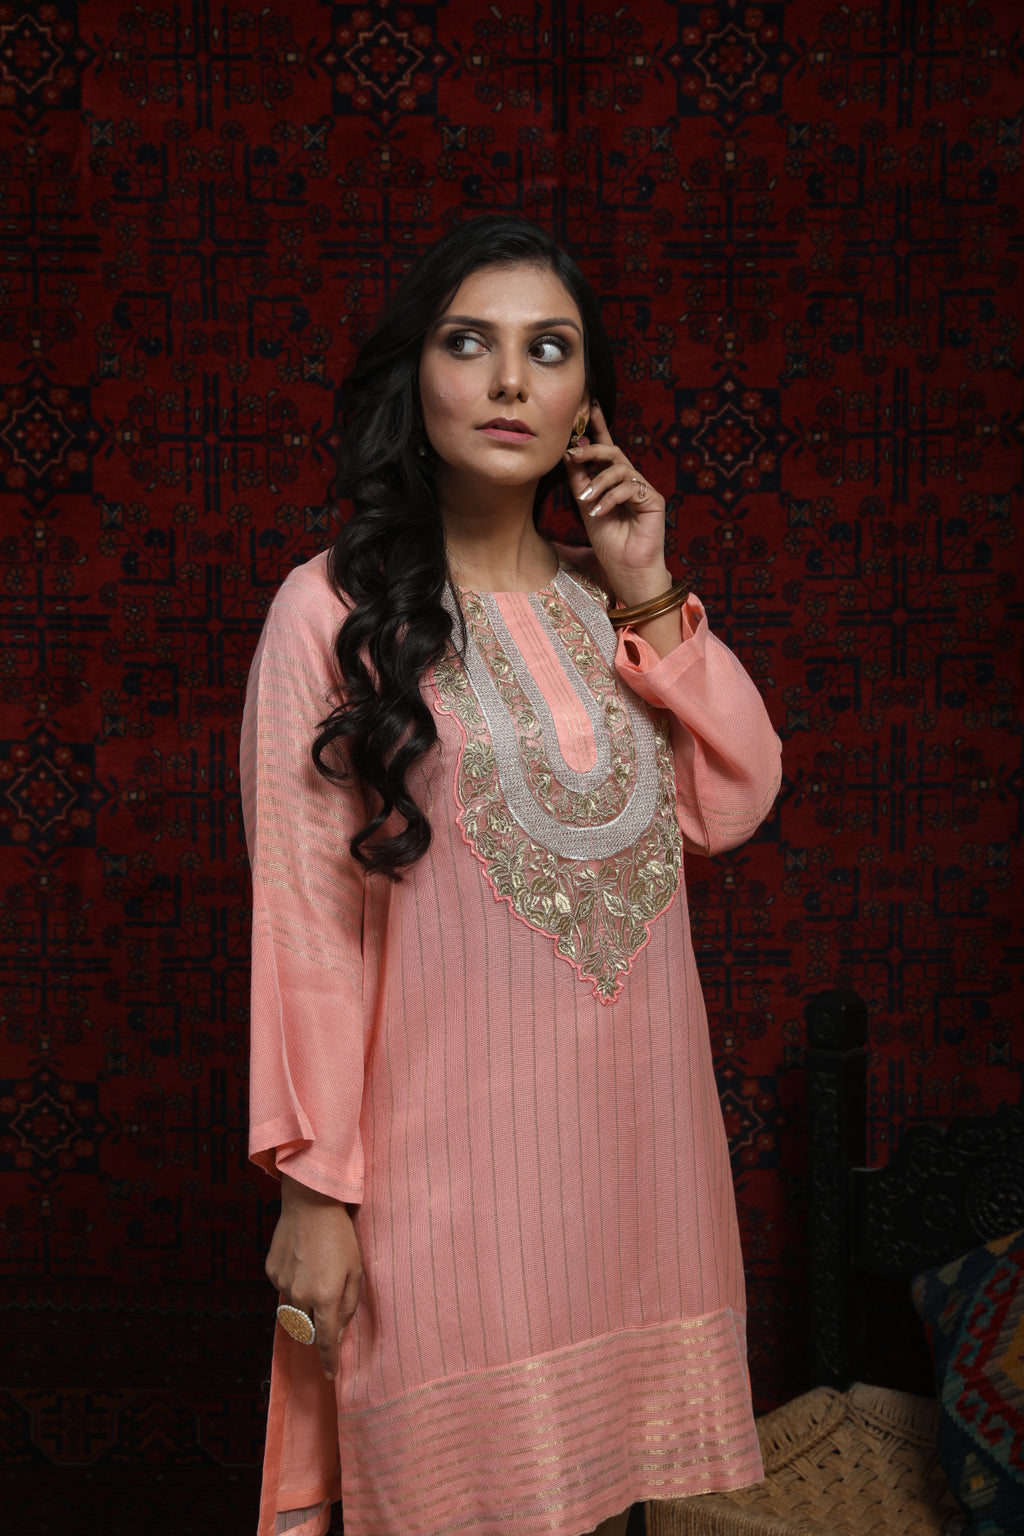 LDA-01497 | Peach | Formal Kurta | Banarsi Khaddi Net